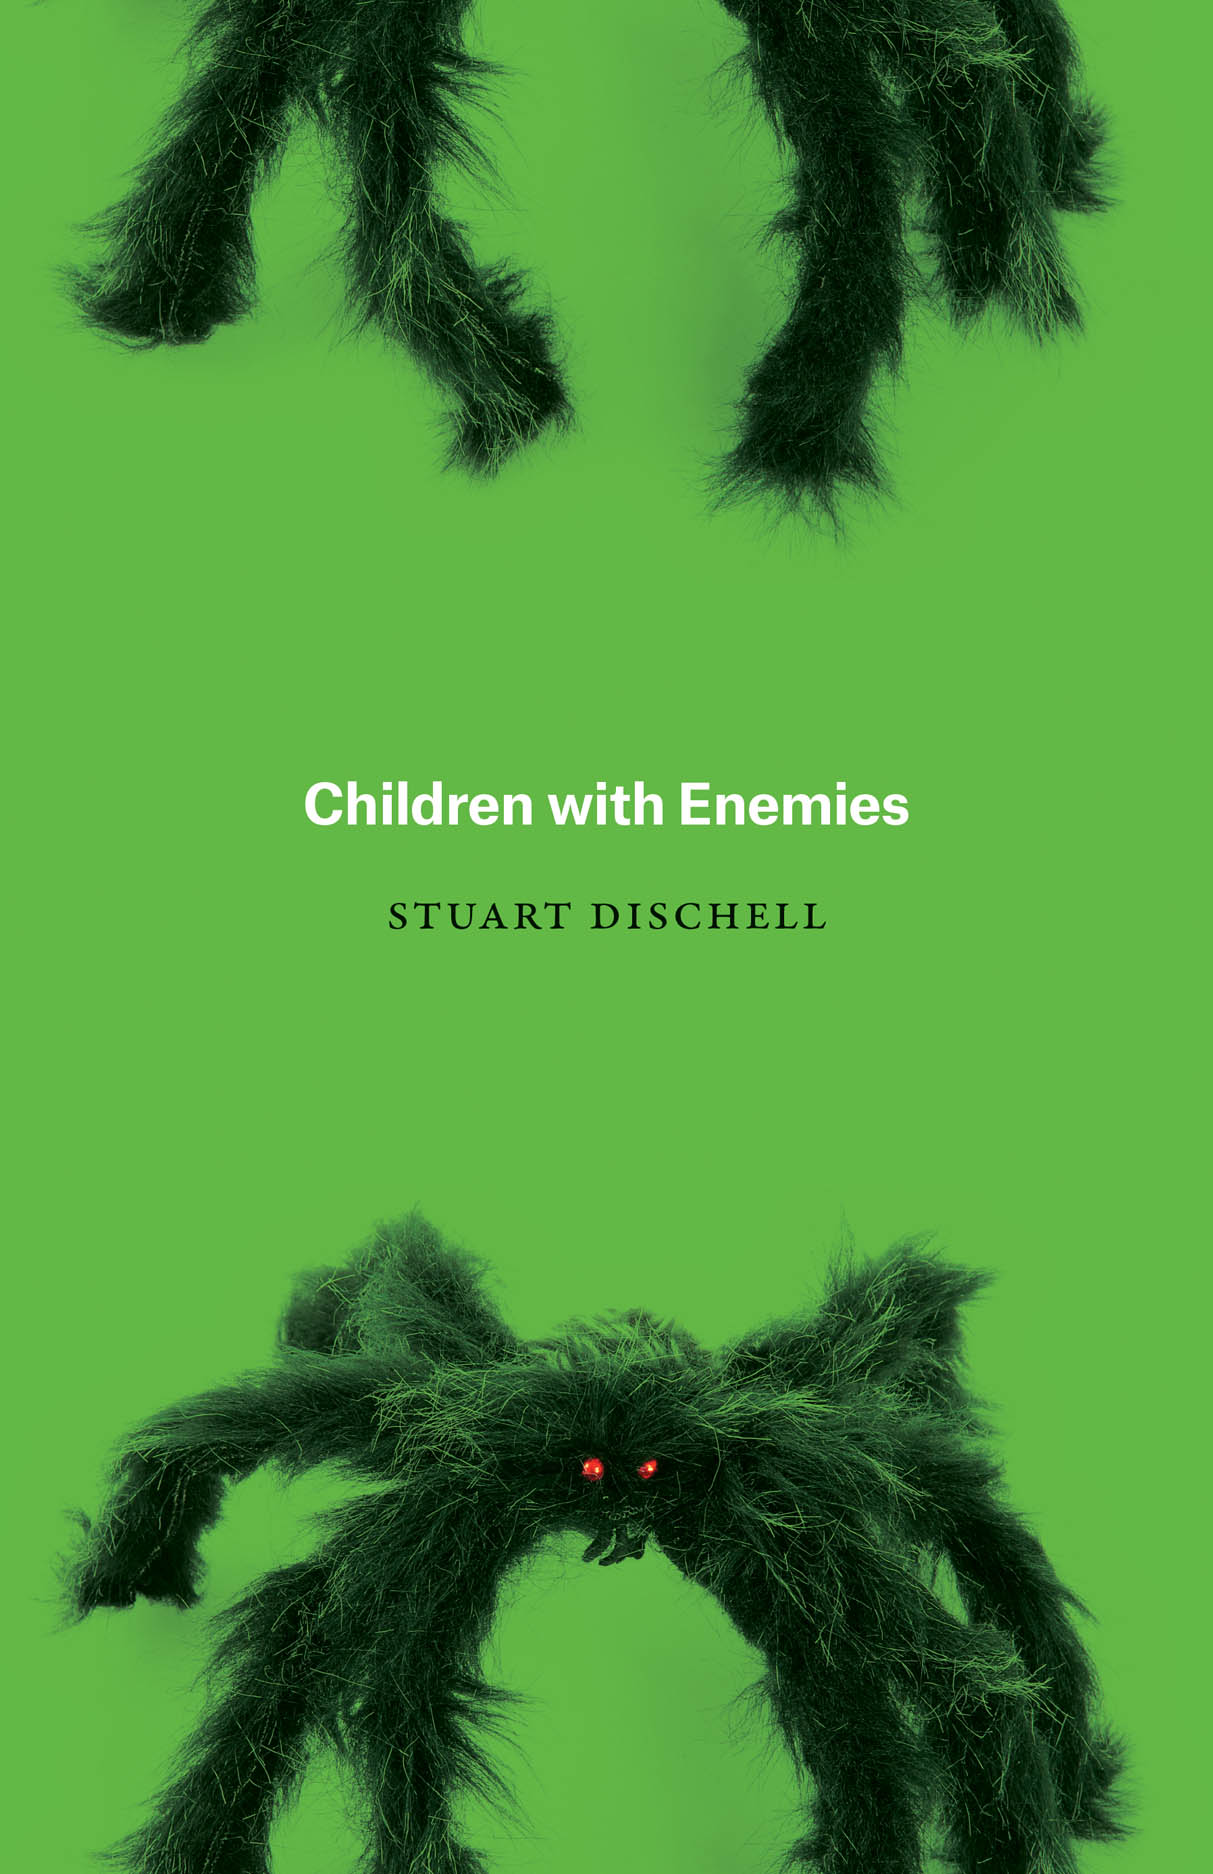 Children with Enemies